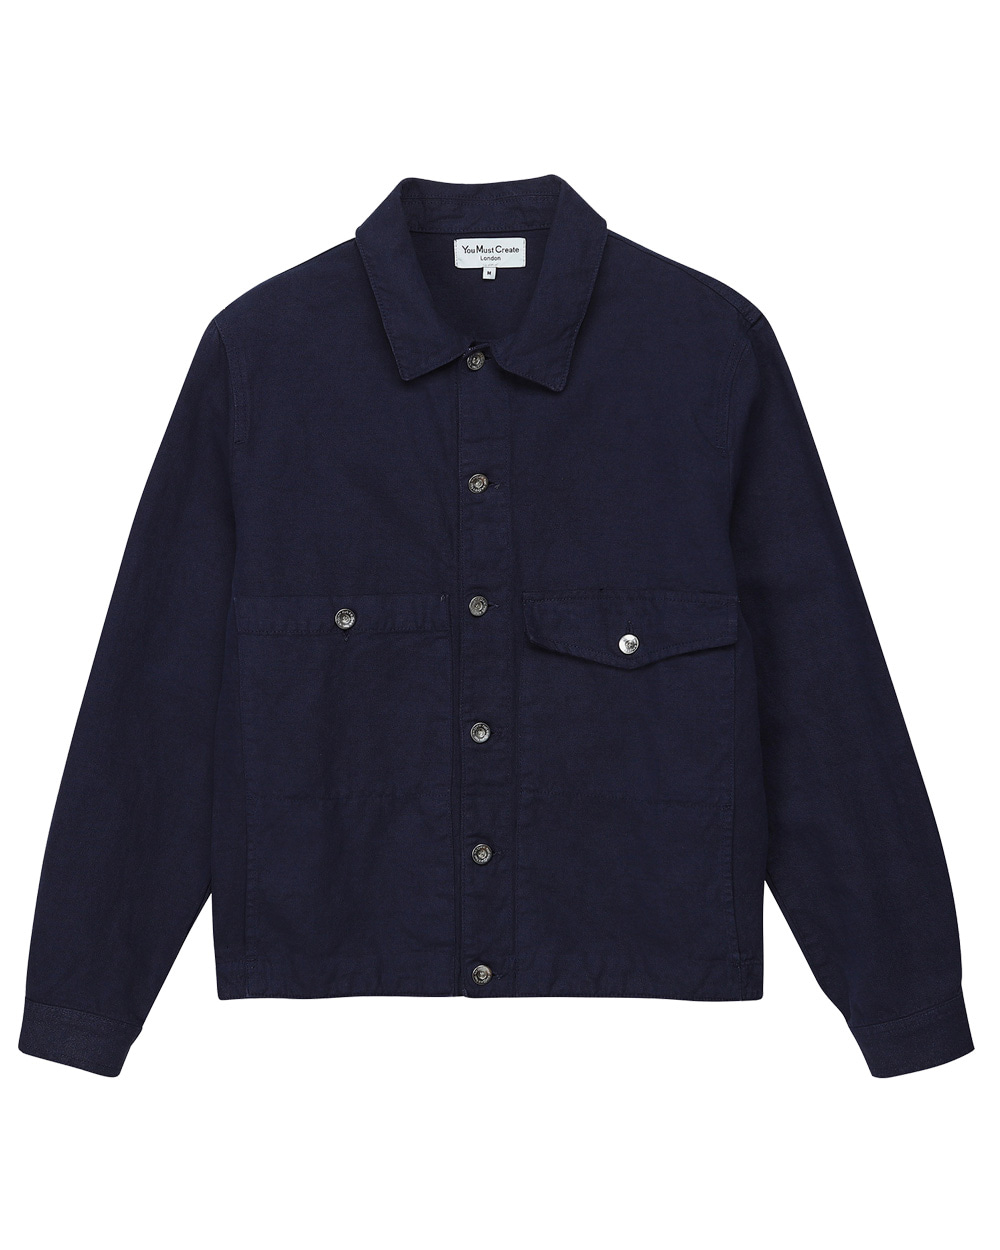 YMC Pinkley Jacket (Navy)